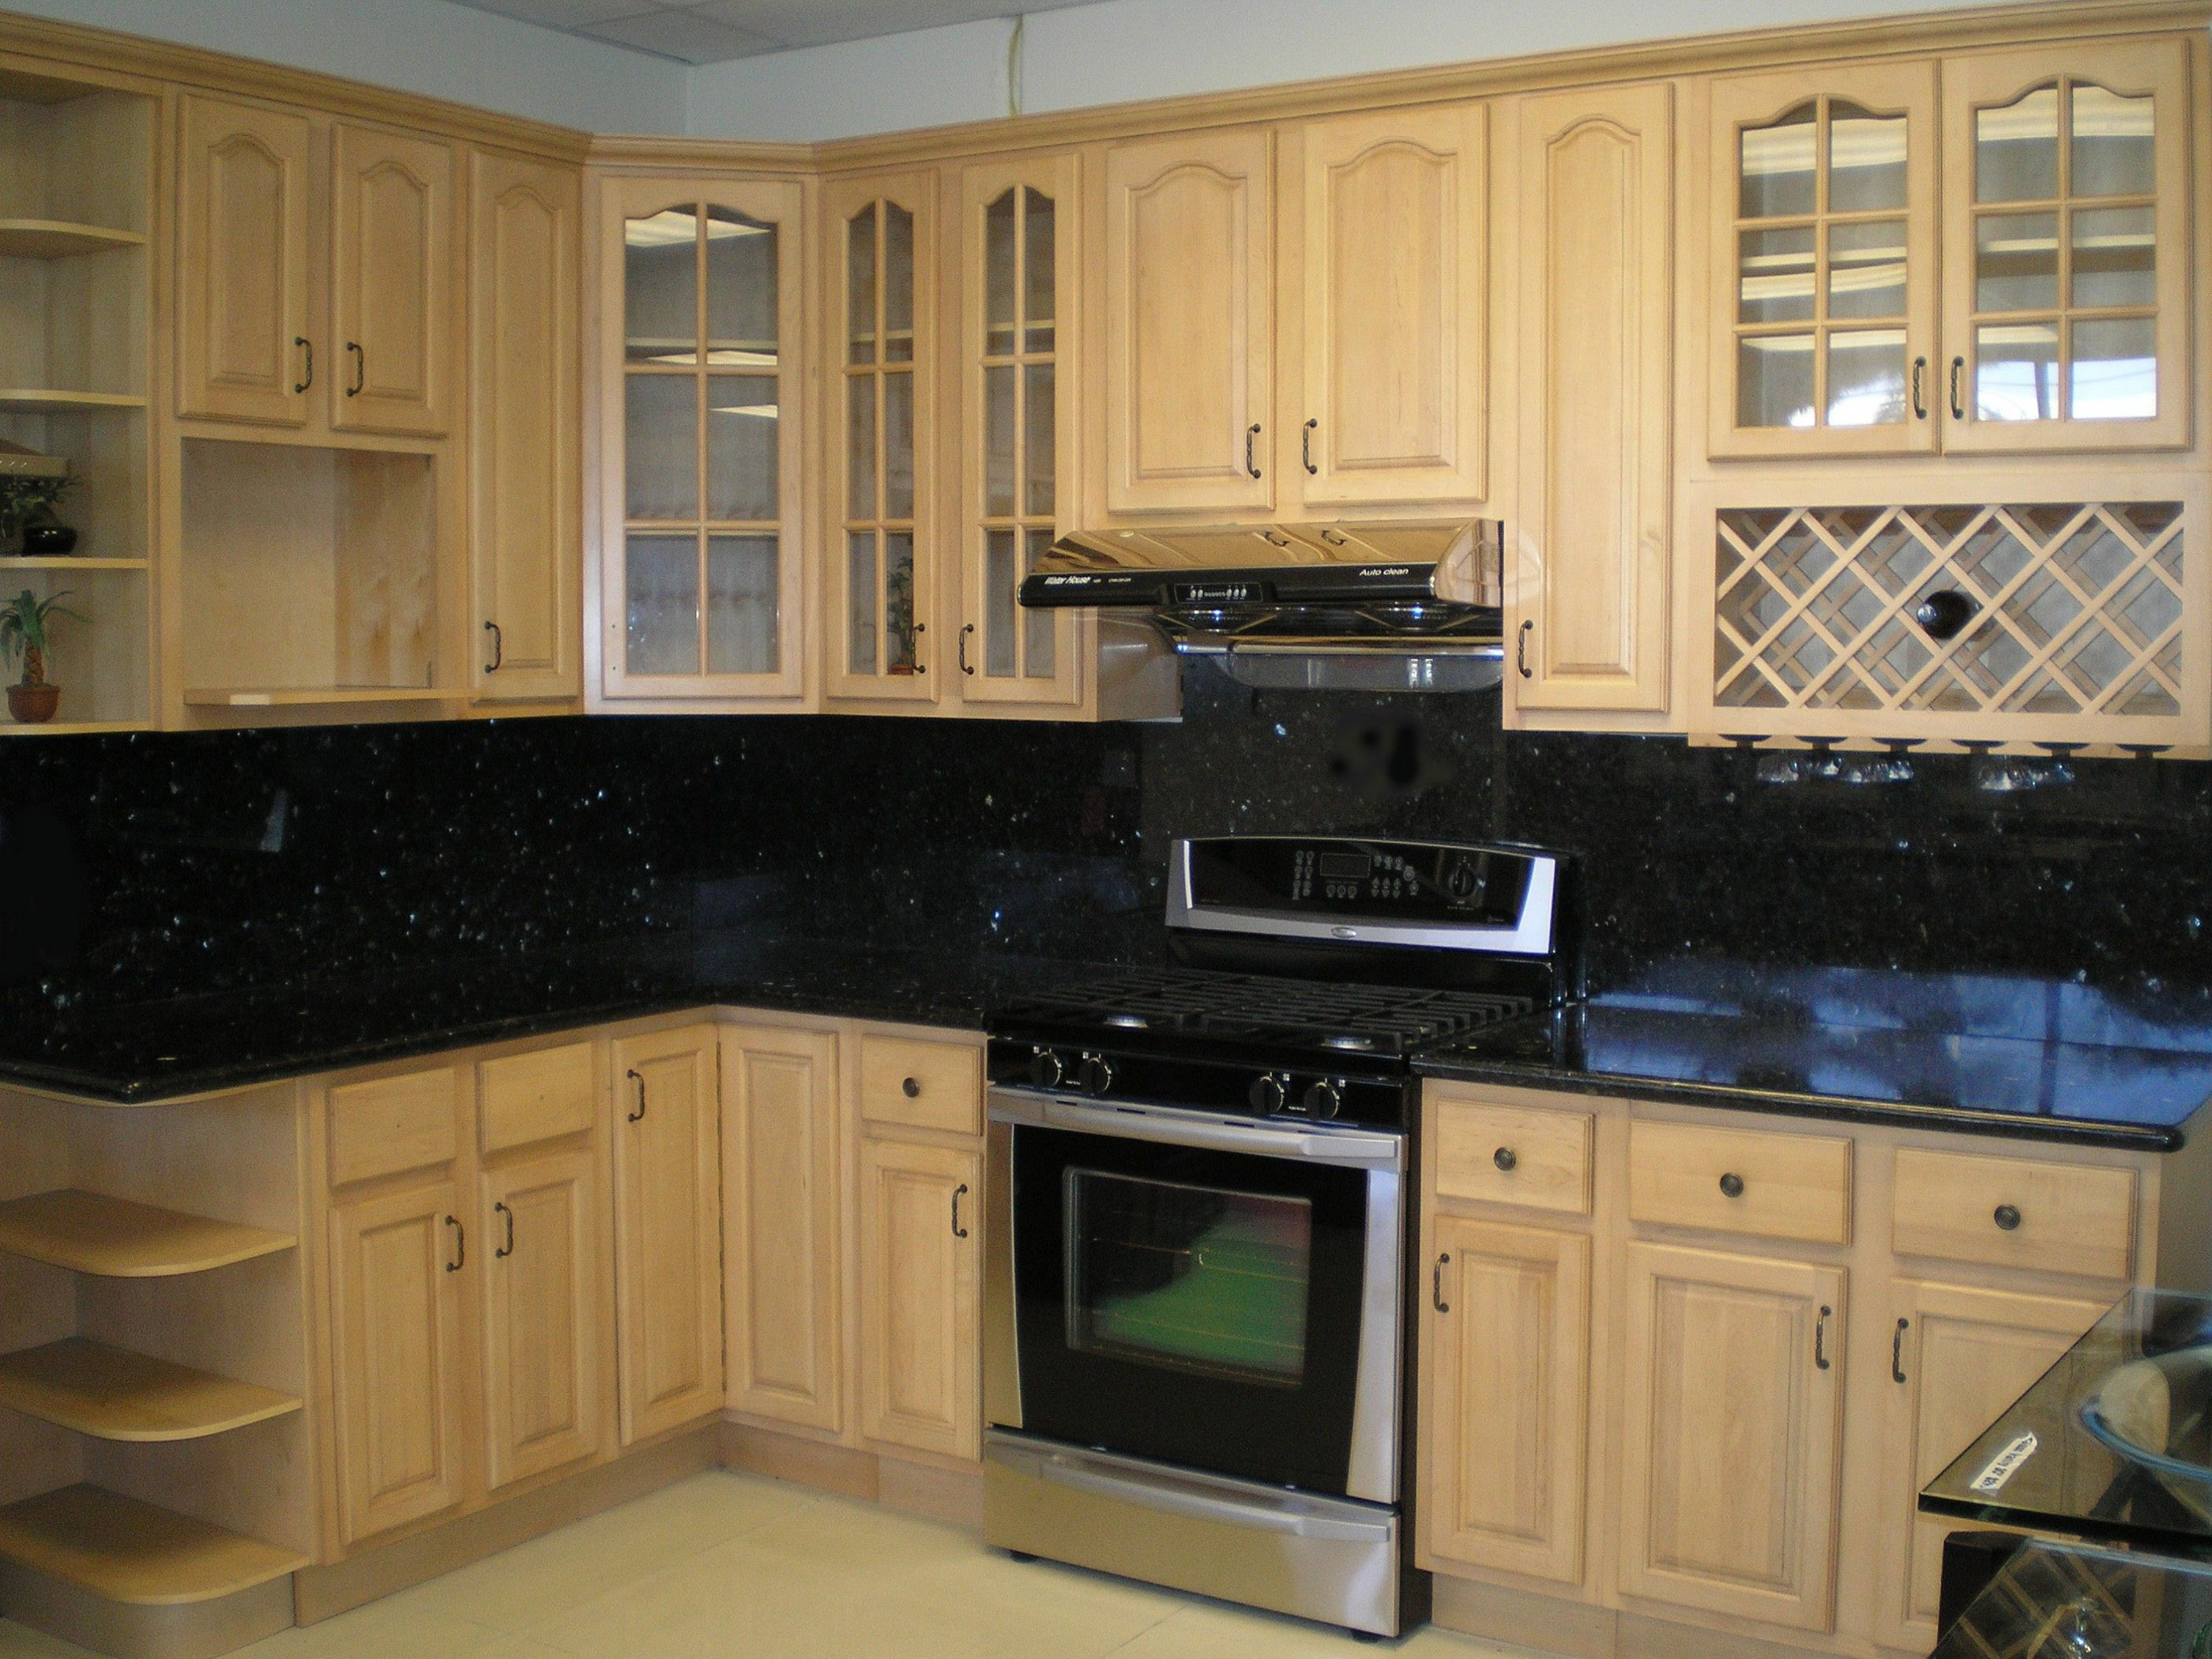 Best Kitchen Gallery: Black Kitchen Wall Cabi S With Glass Doors Kitchen Cabi S of Cathedral Walls In Kitchen Cabinets on cal-ite.com